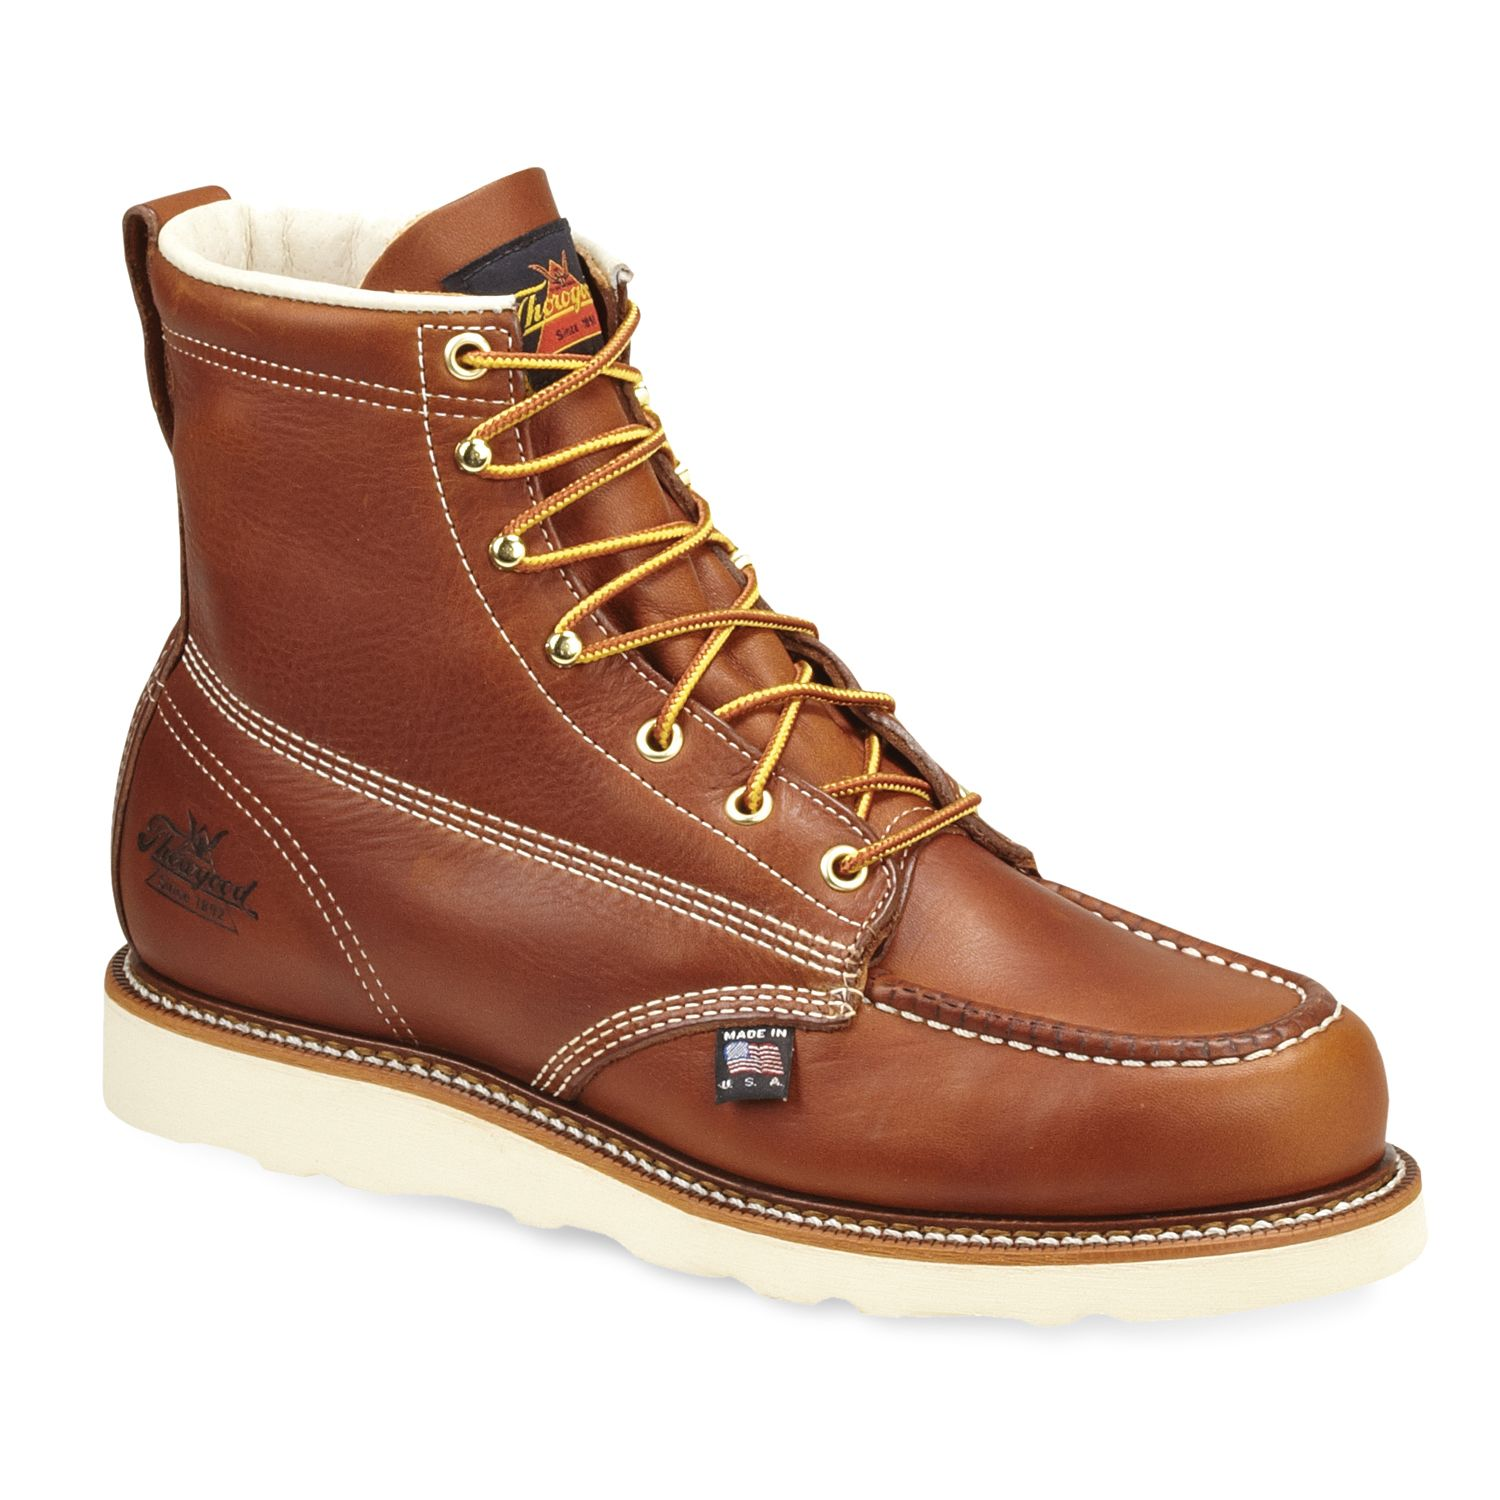 6c2699a5e59 Mens Work Boots | Kohl's